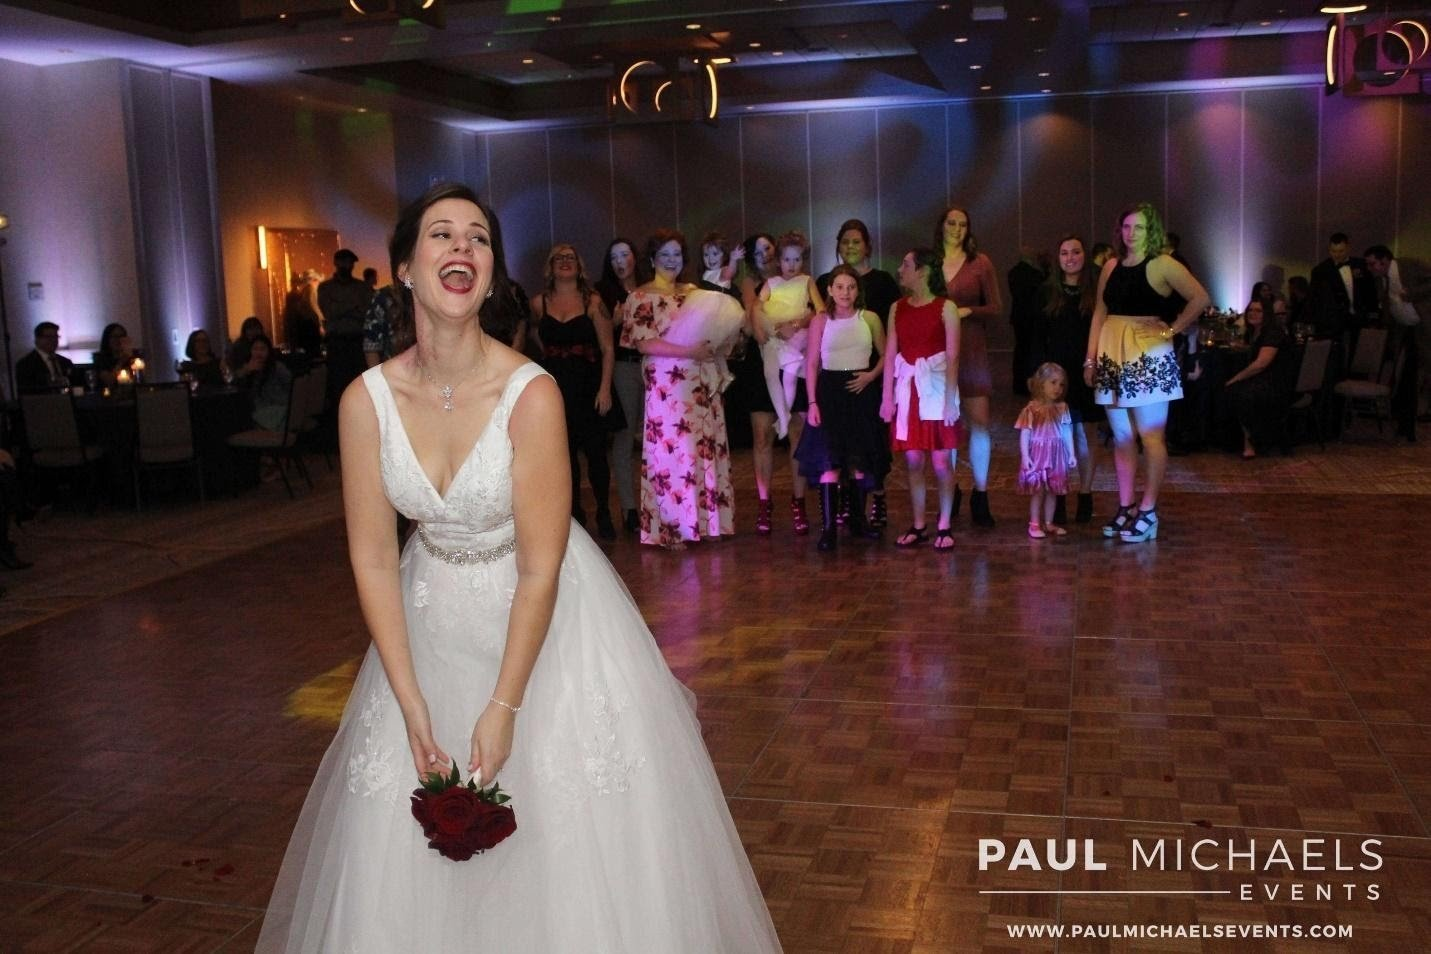 Chicago bride tossing her bouquet